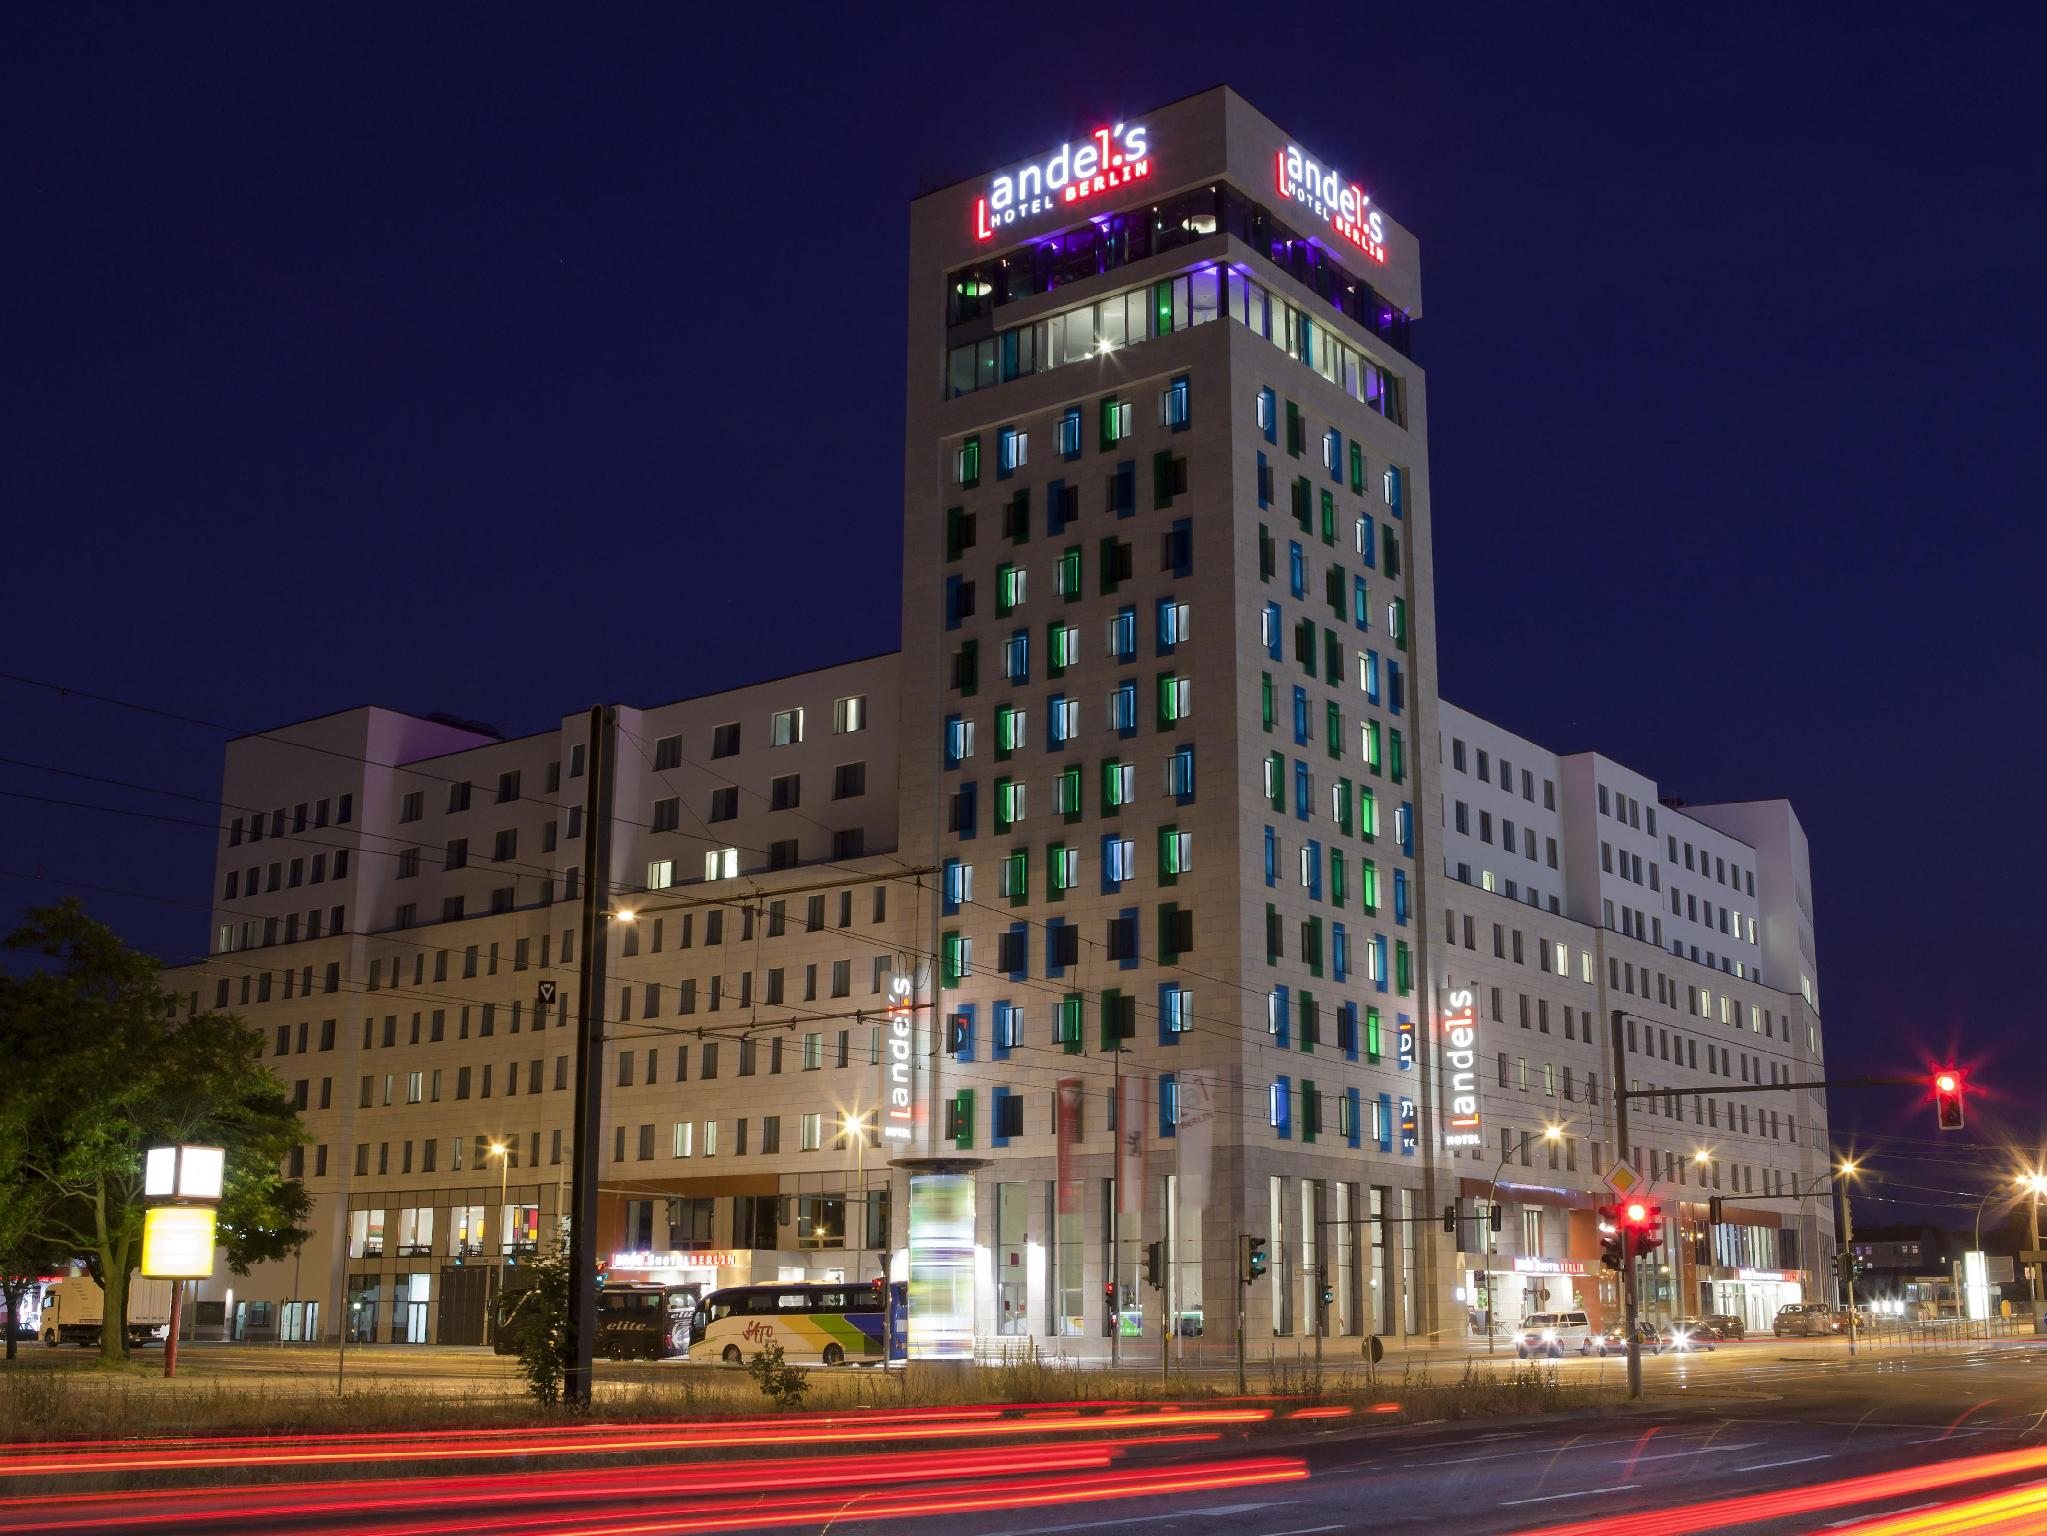 andel's Hotel Berlin, managed by Vienna International Hotels and Resorts Berlynas